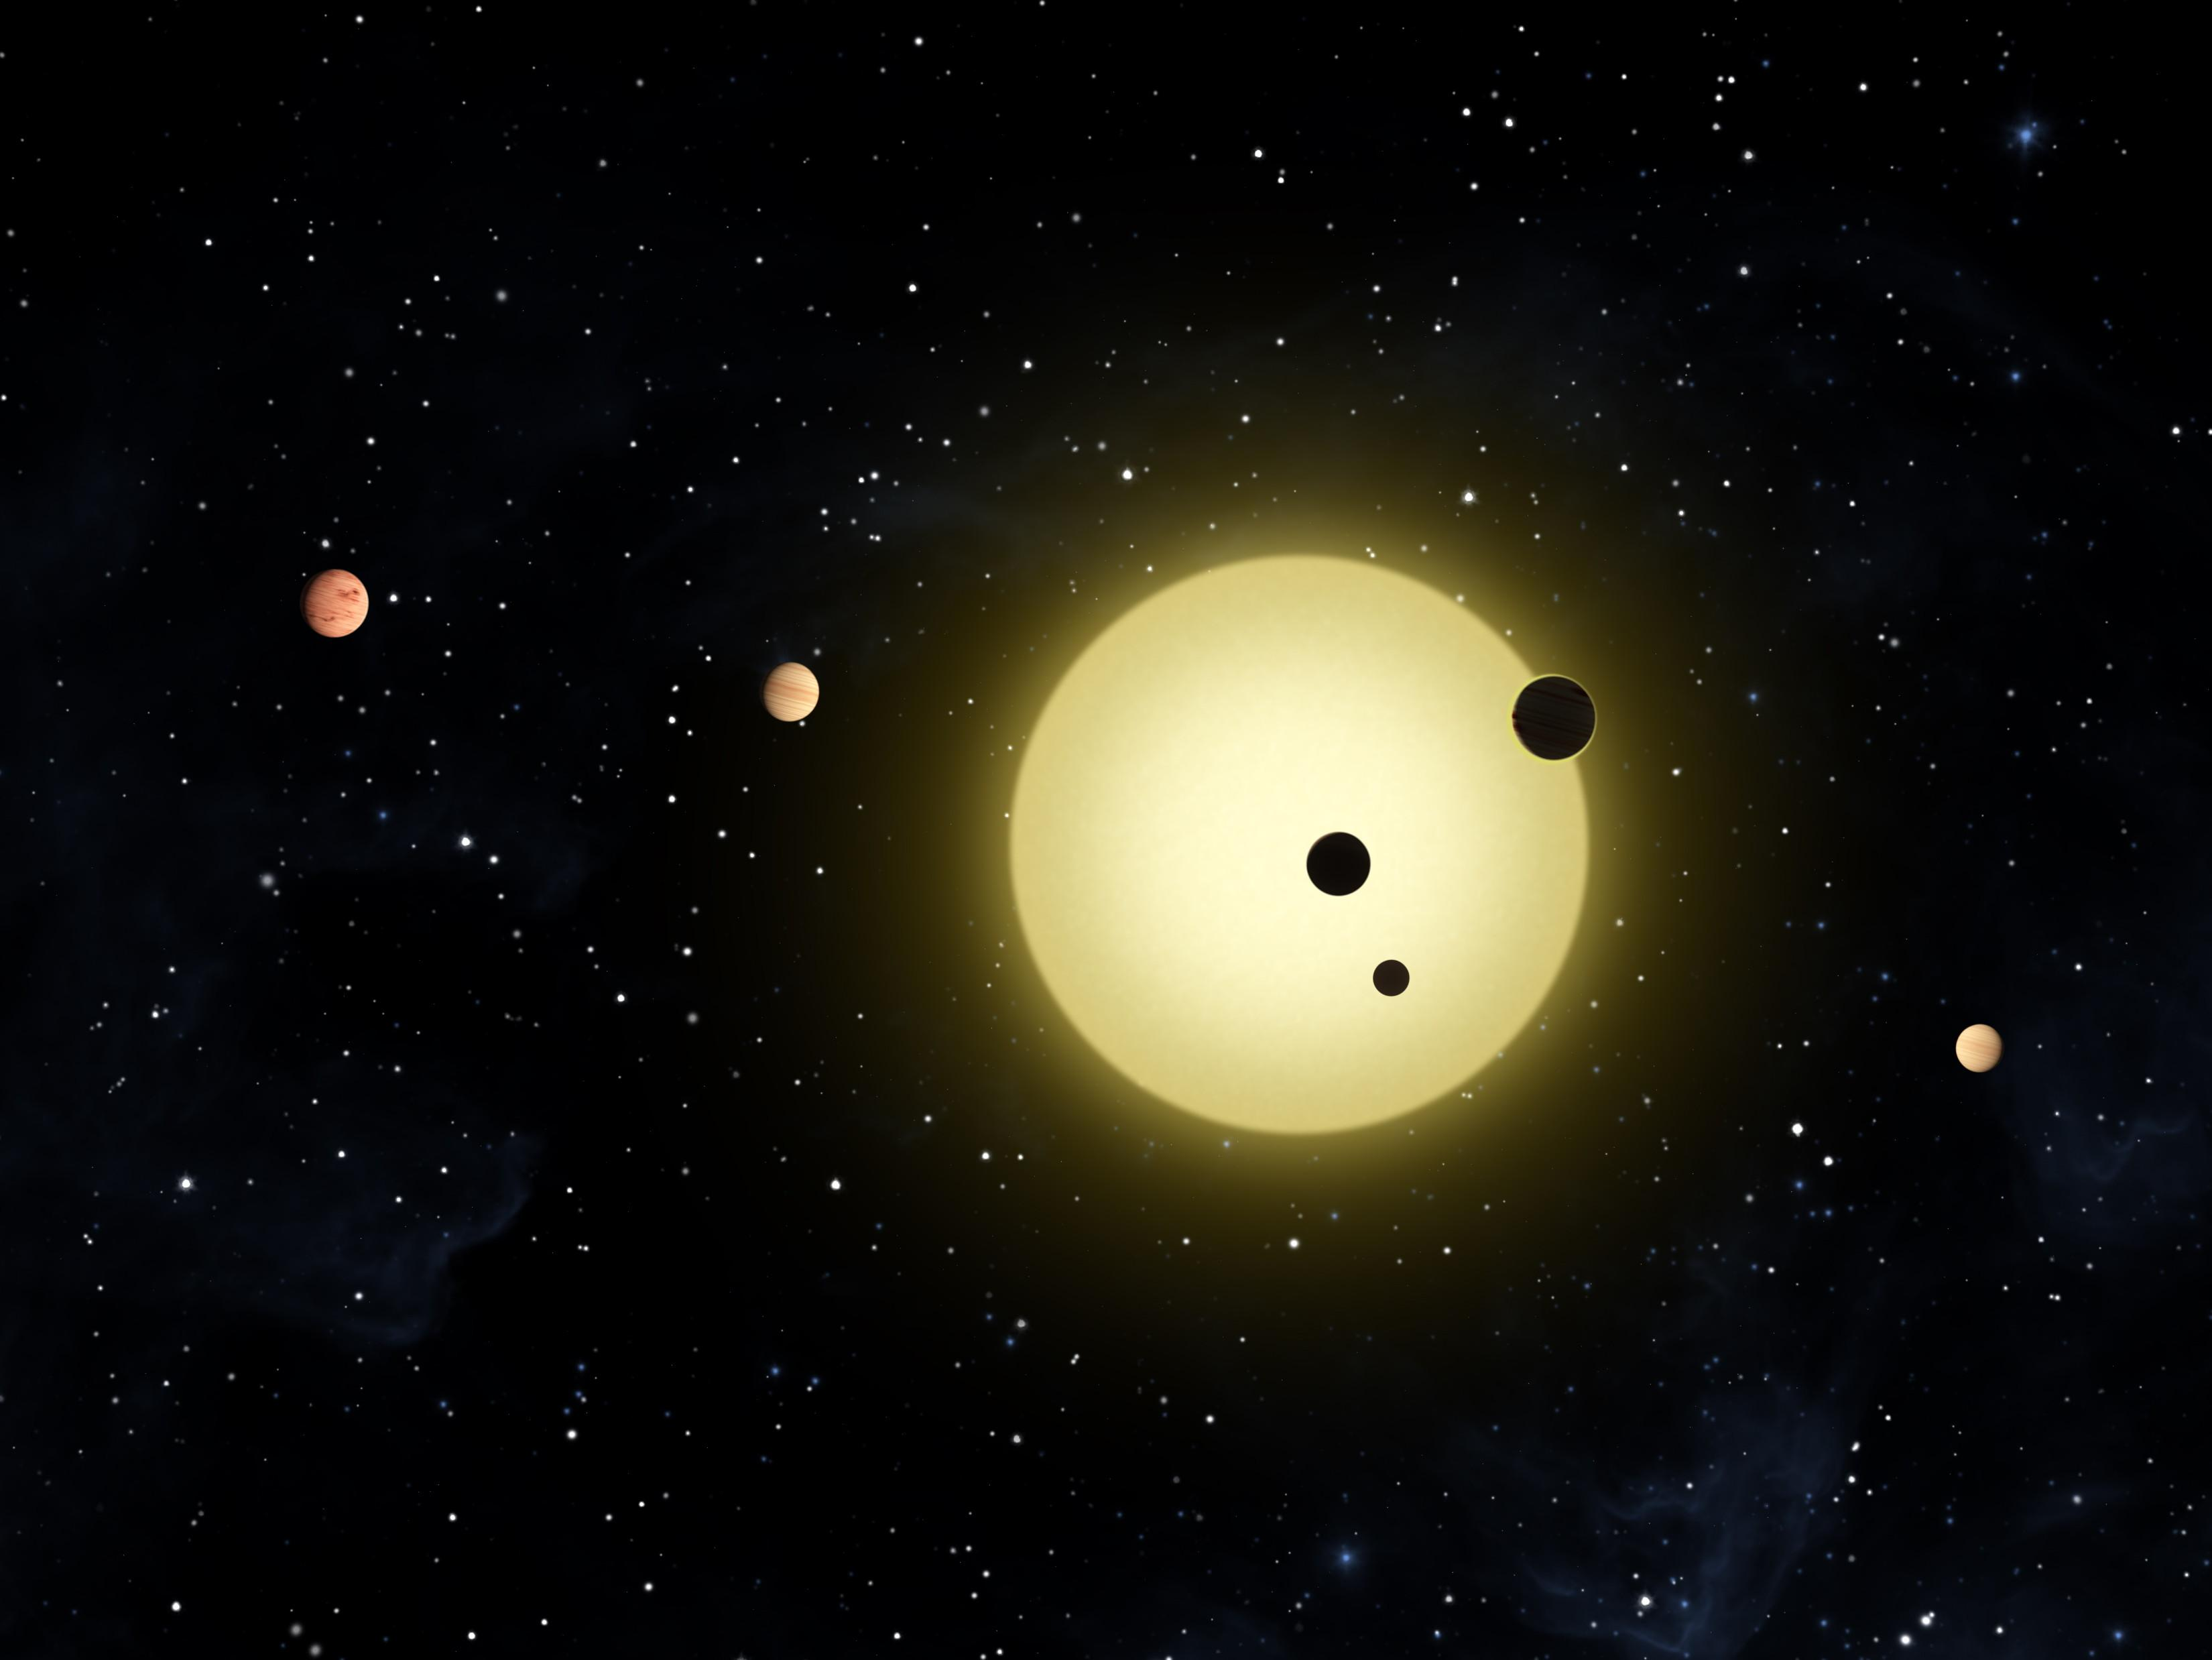 Artist Concept Of Sun Like Star With Planets Orbiting